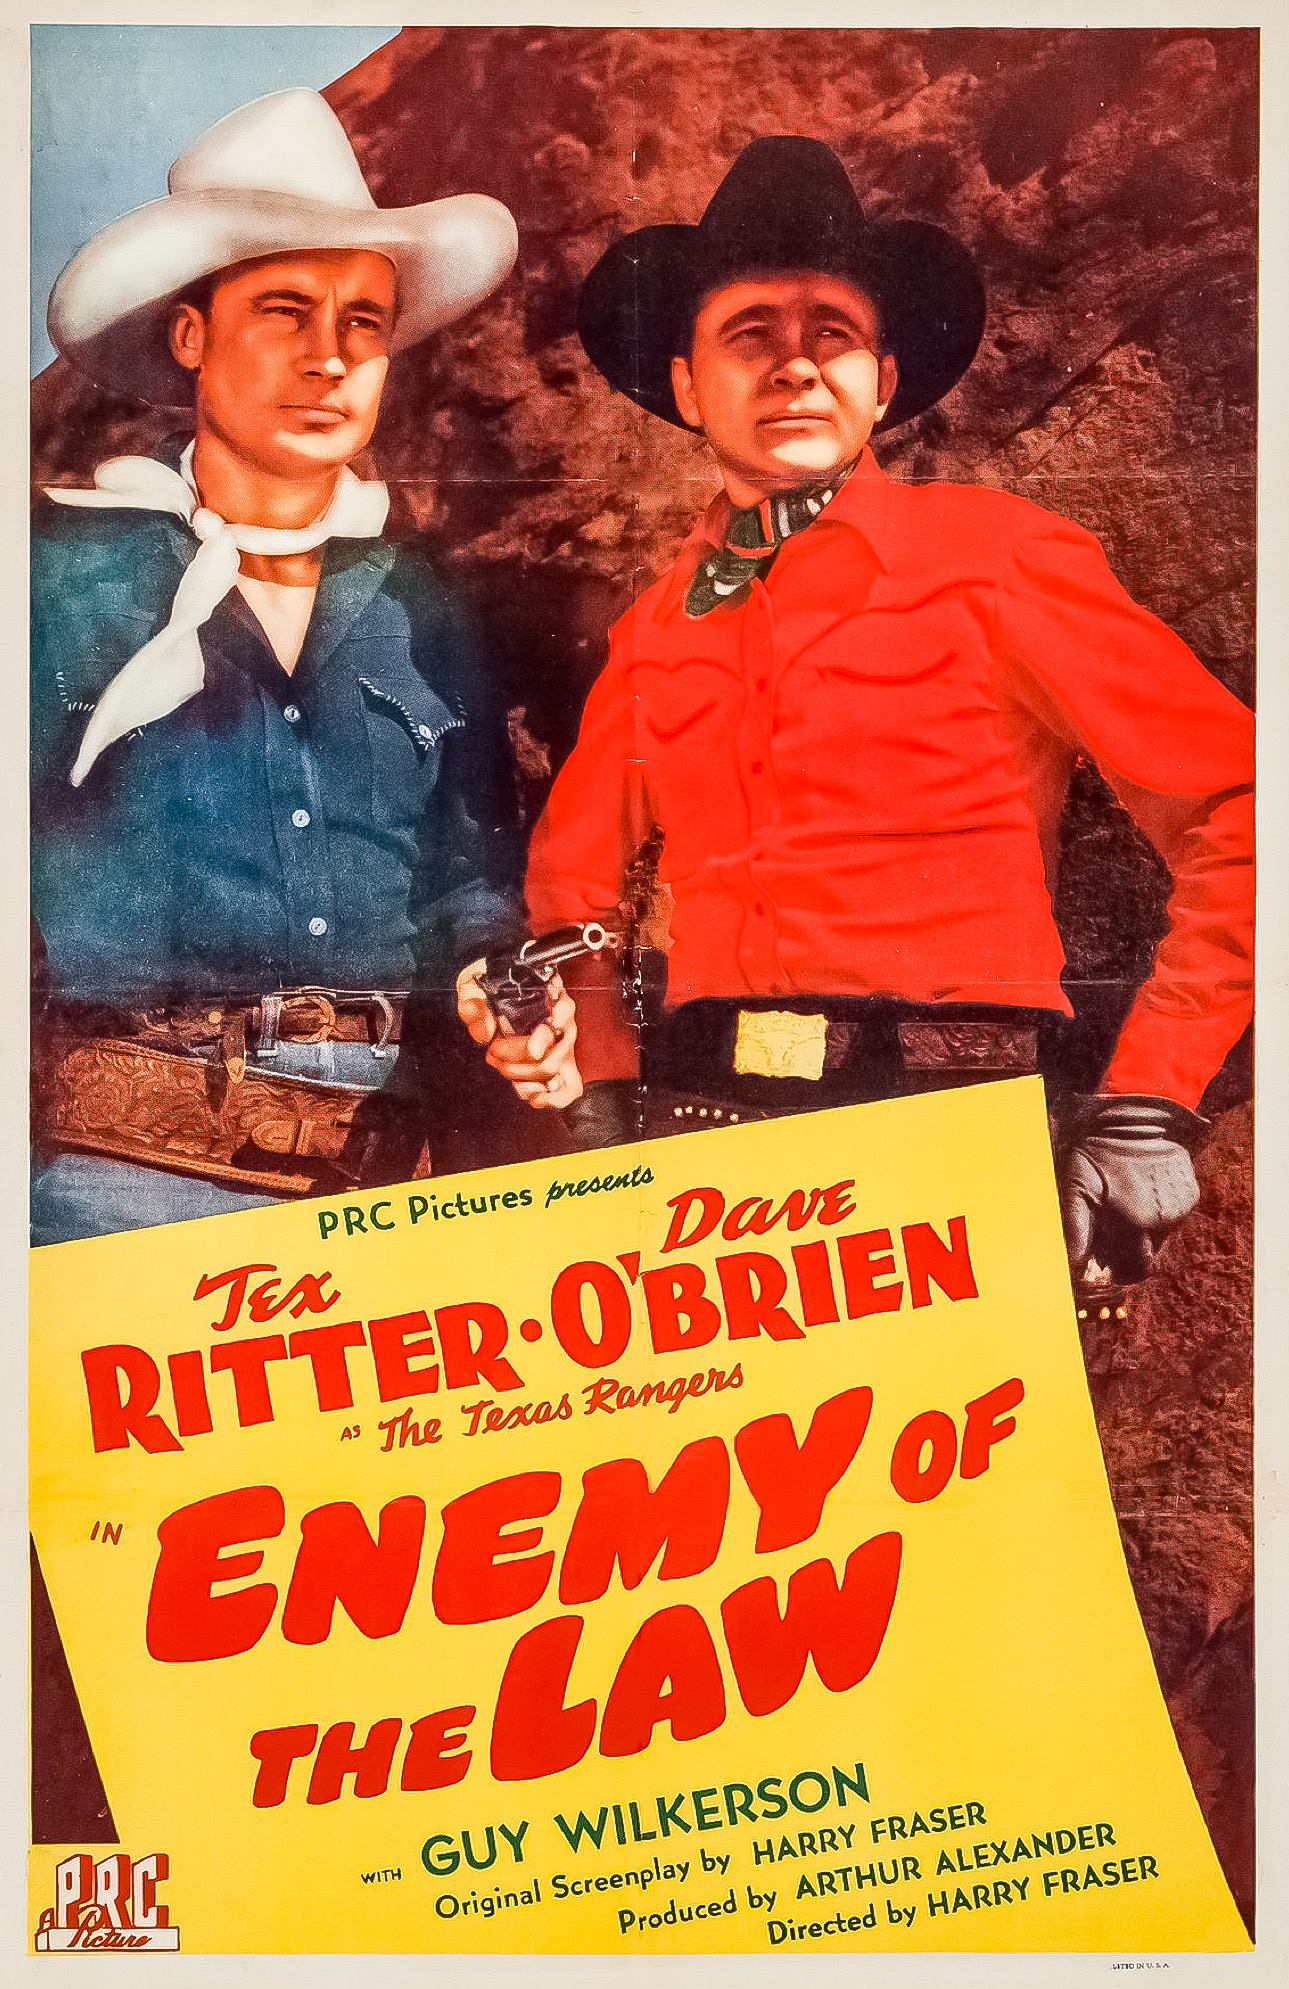 Dave O'Brien, Tex Ritter, and Guy Wilkerson in Enemy of the Law (1945)